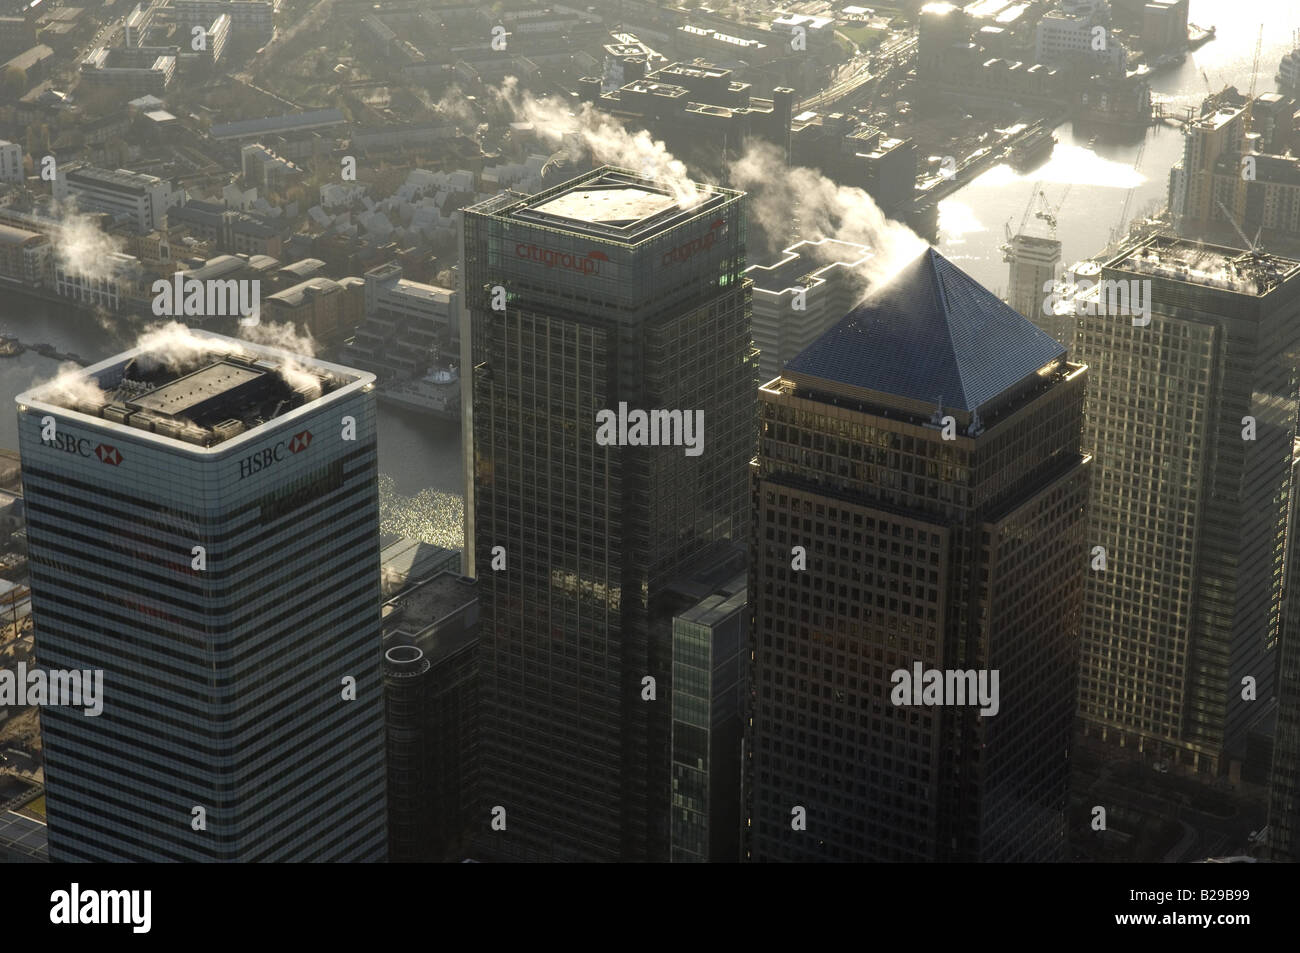 Canary Wharf Date 12 03 2008 Ref ZB648 111149 0018 COMPULSORY CREDIT World Pictures Photoshot - Stock Image